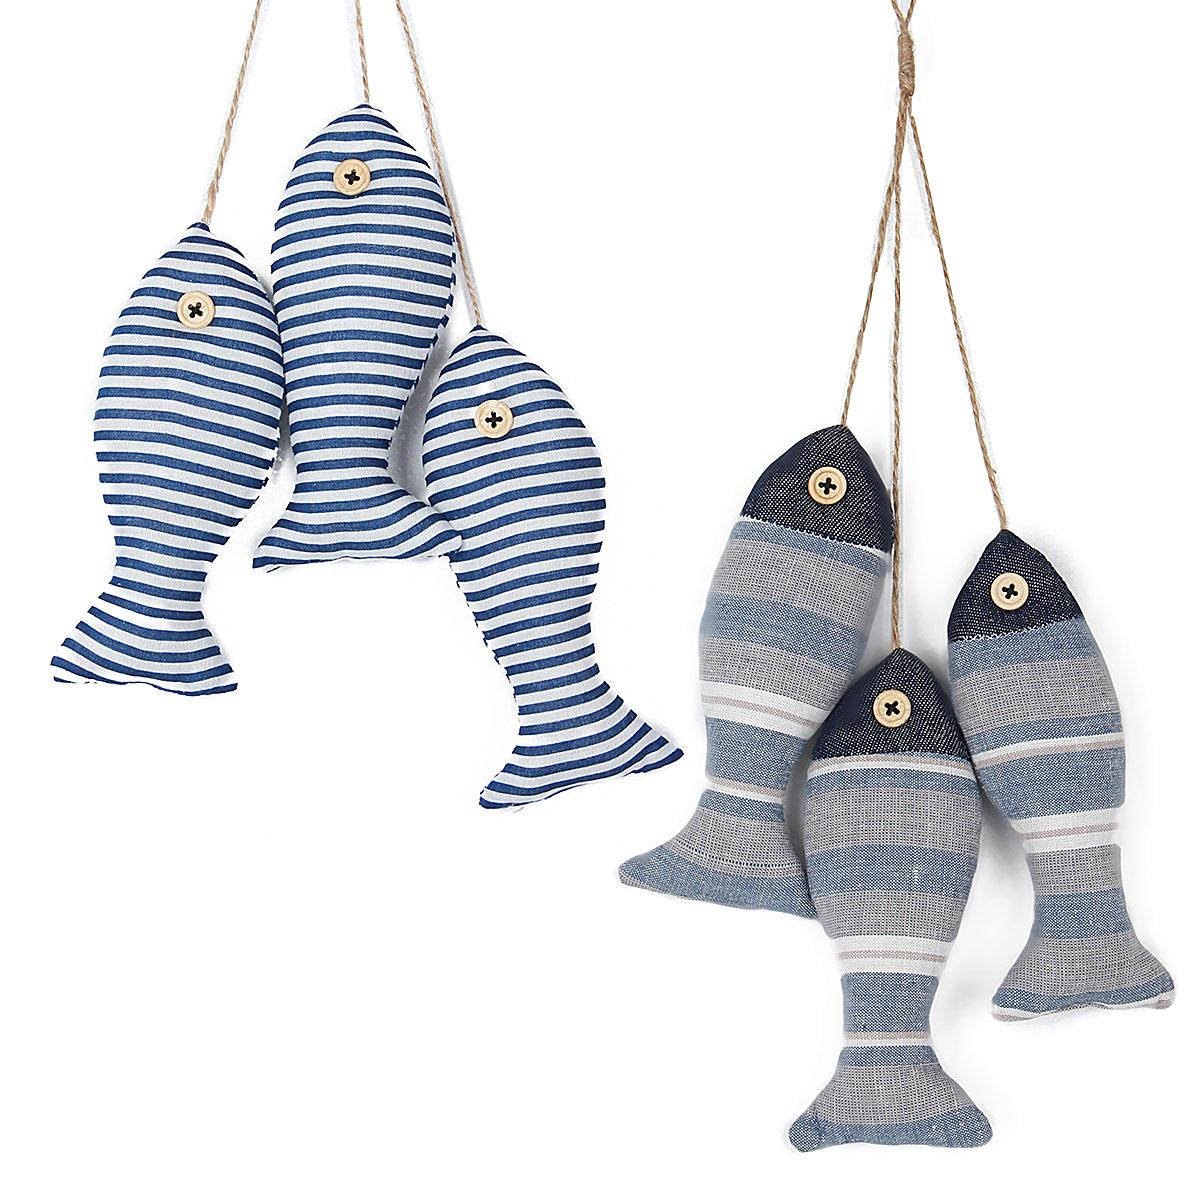 Personalized ornaments for kids - 3pc 1set Mediterranean Fish Personalized Cloth Blue Fish Wall Hanging Craft Home Party Decor Nautical Ocean Kid Room Ornaments